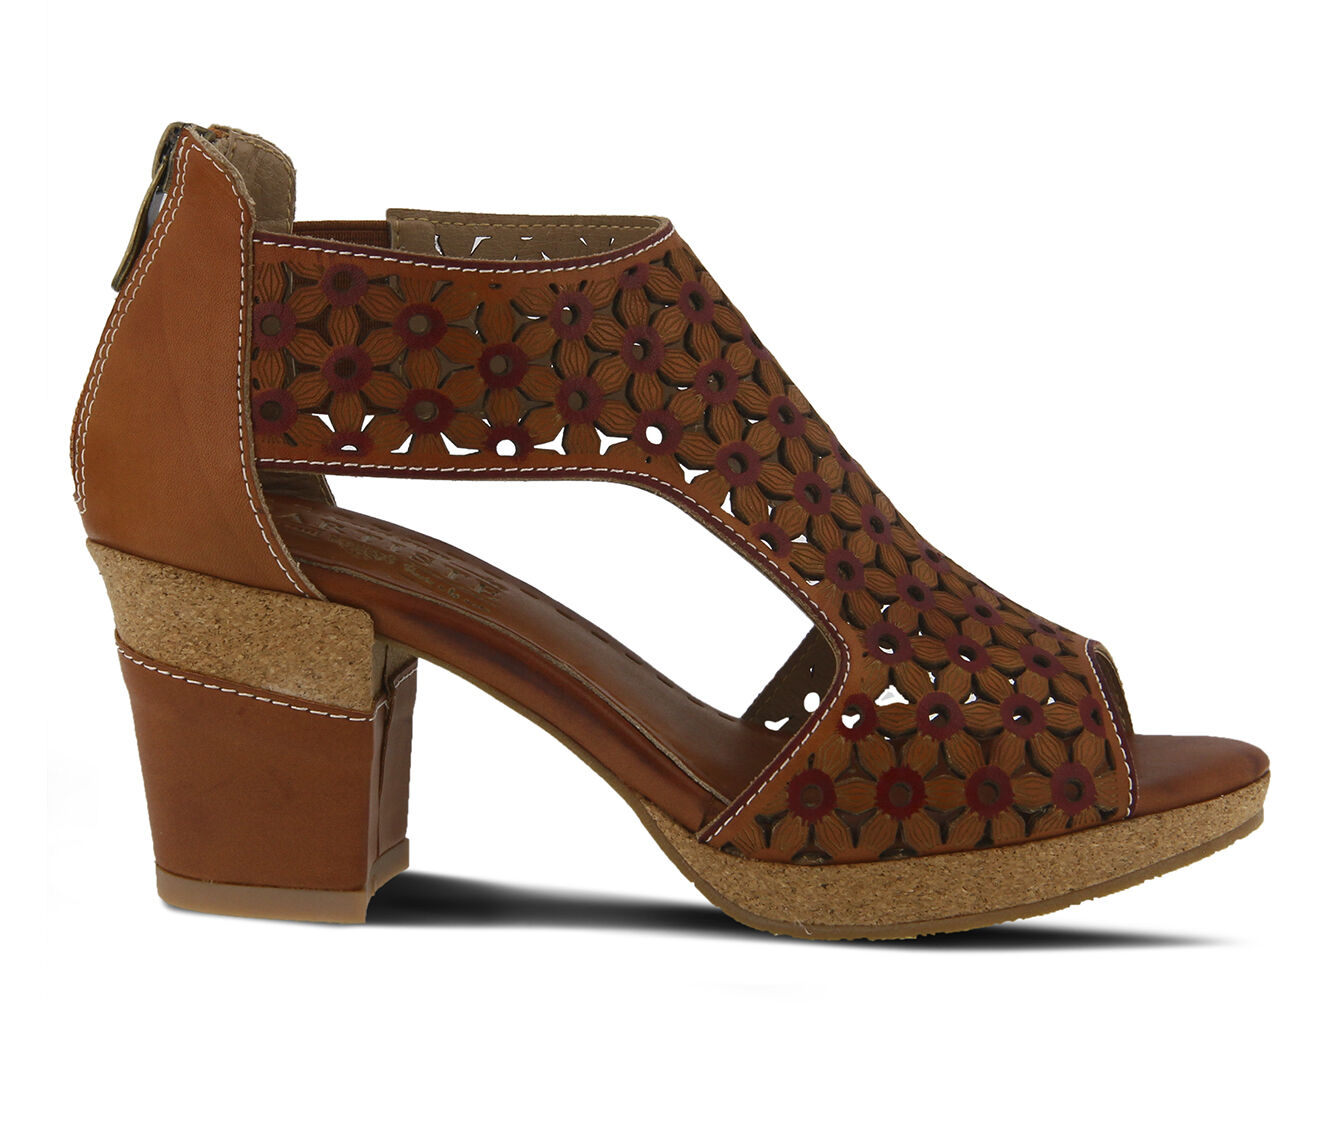 Women's L'ARTISTE Hibiskus Dress Sandals Camel